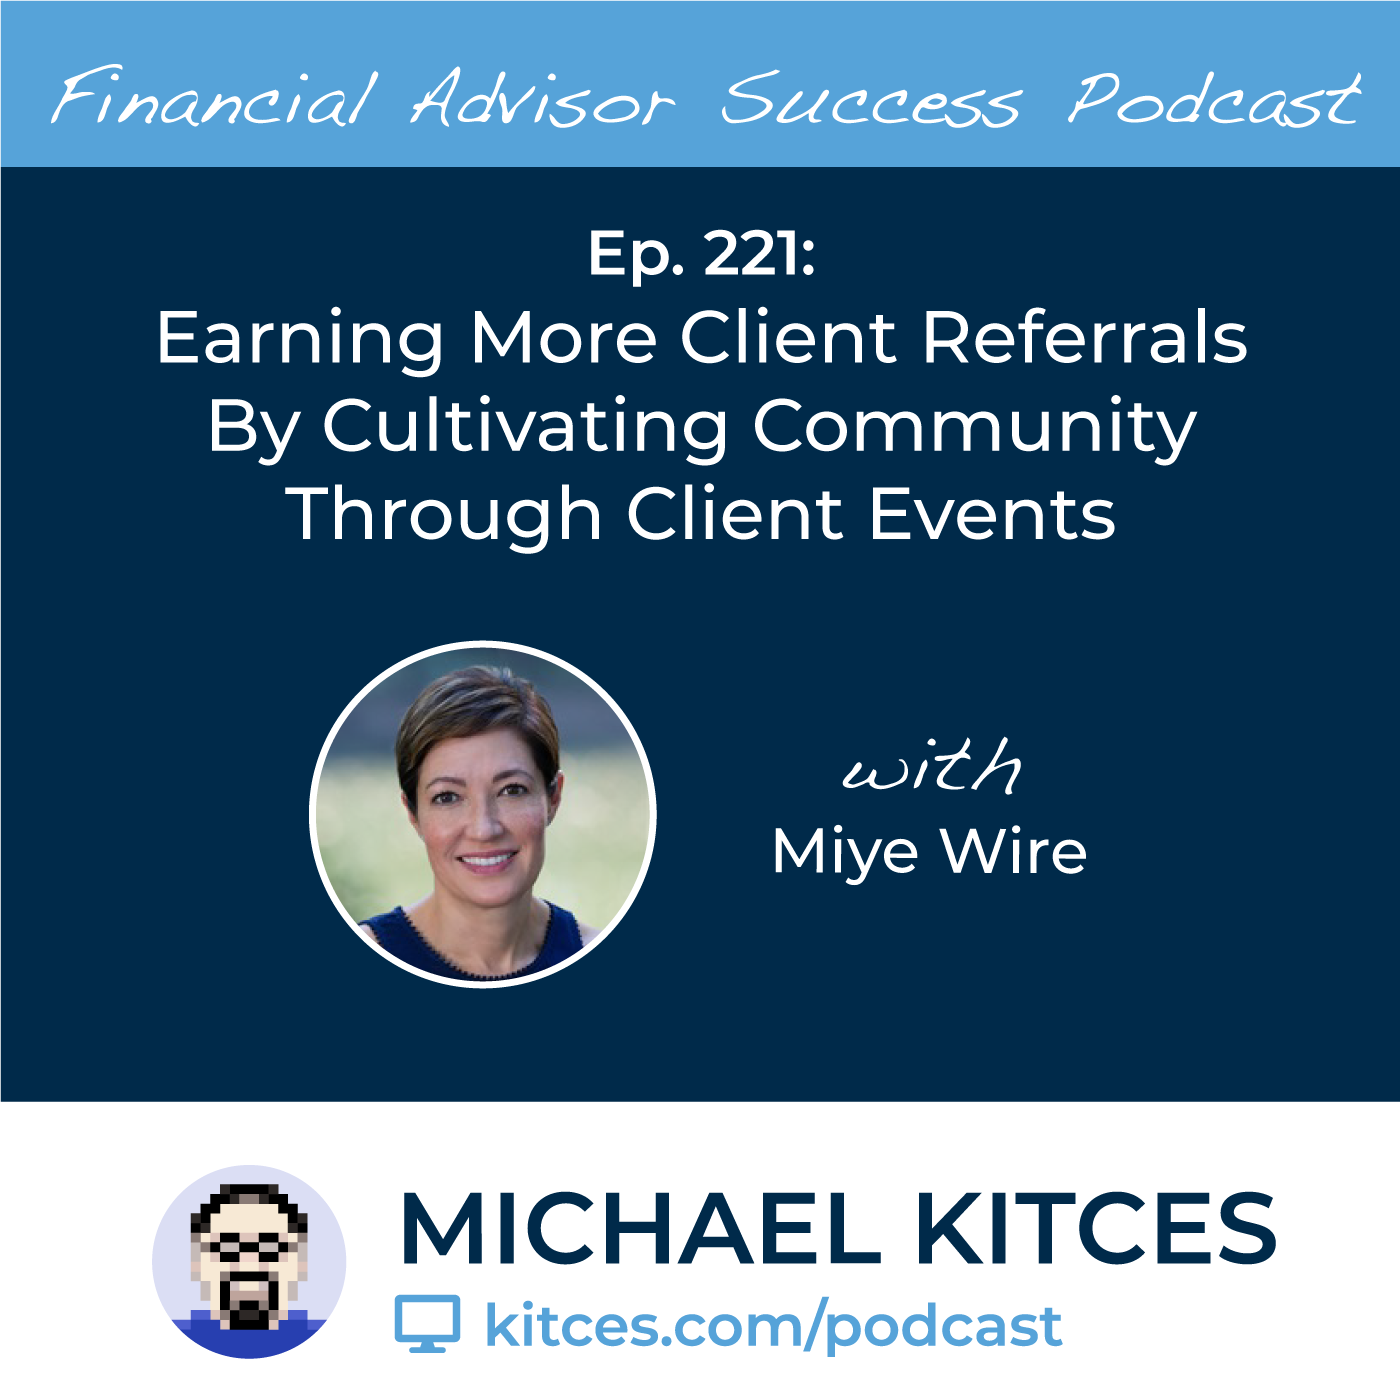 Ep 221: Earning More Client Referrals By Cultivating Community Through Client Events with Miye Wire